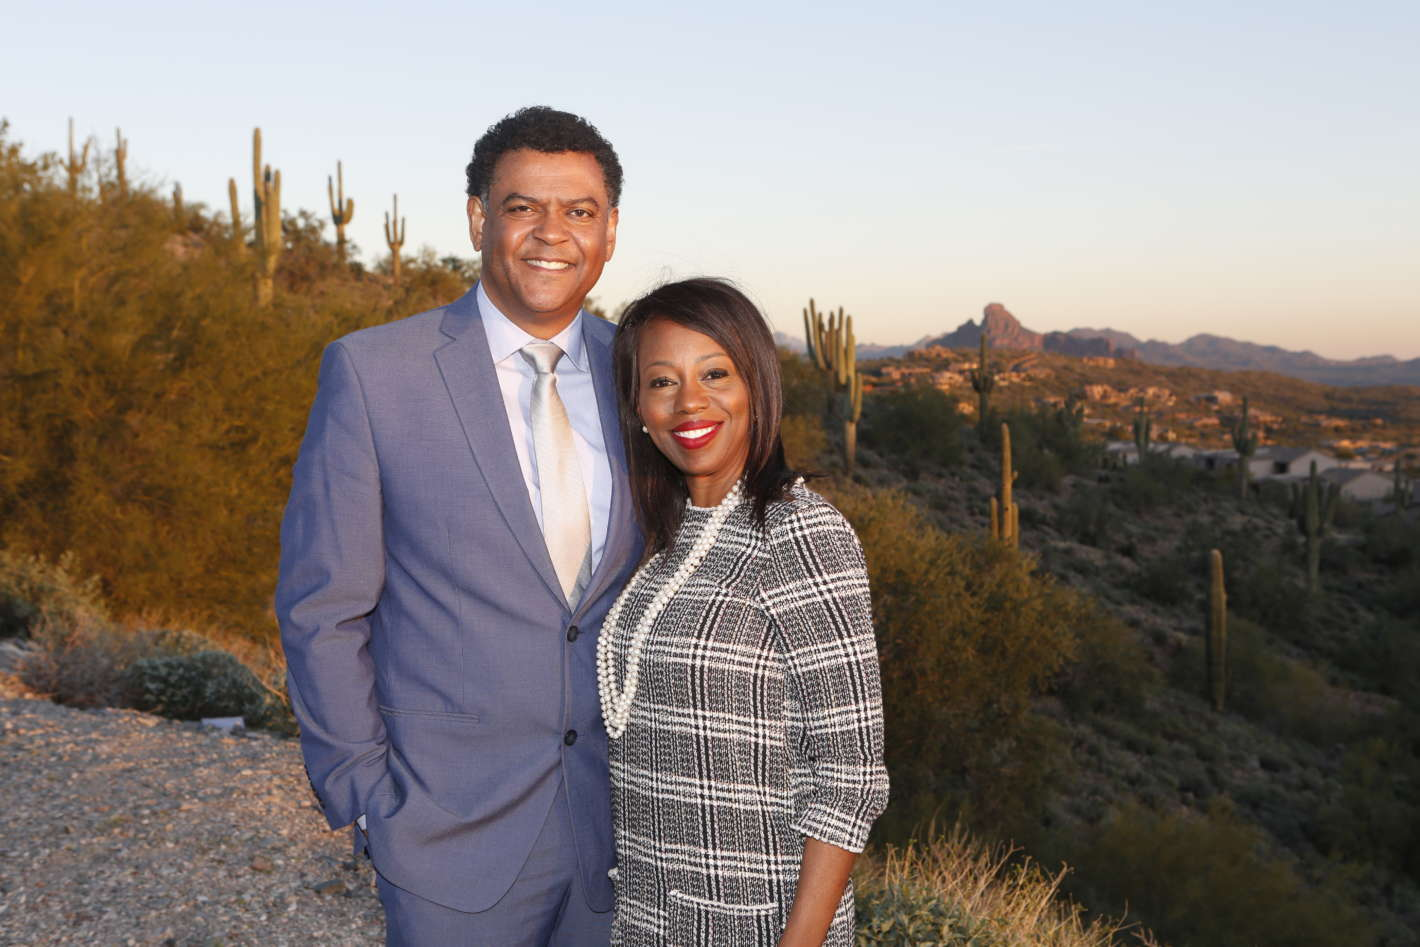 Karl Gentles wants to Get Things Done for Congressional District Six and Arizona